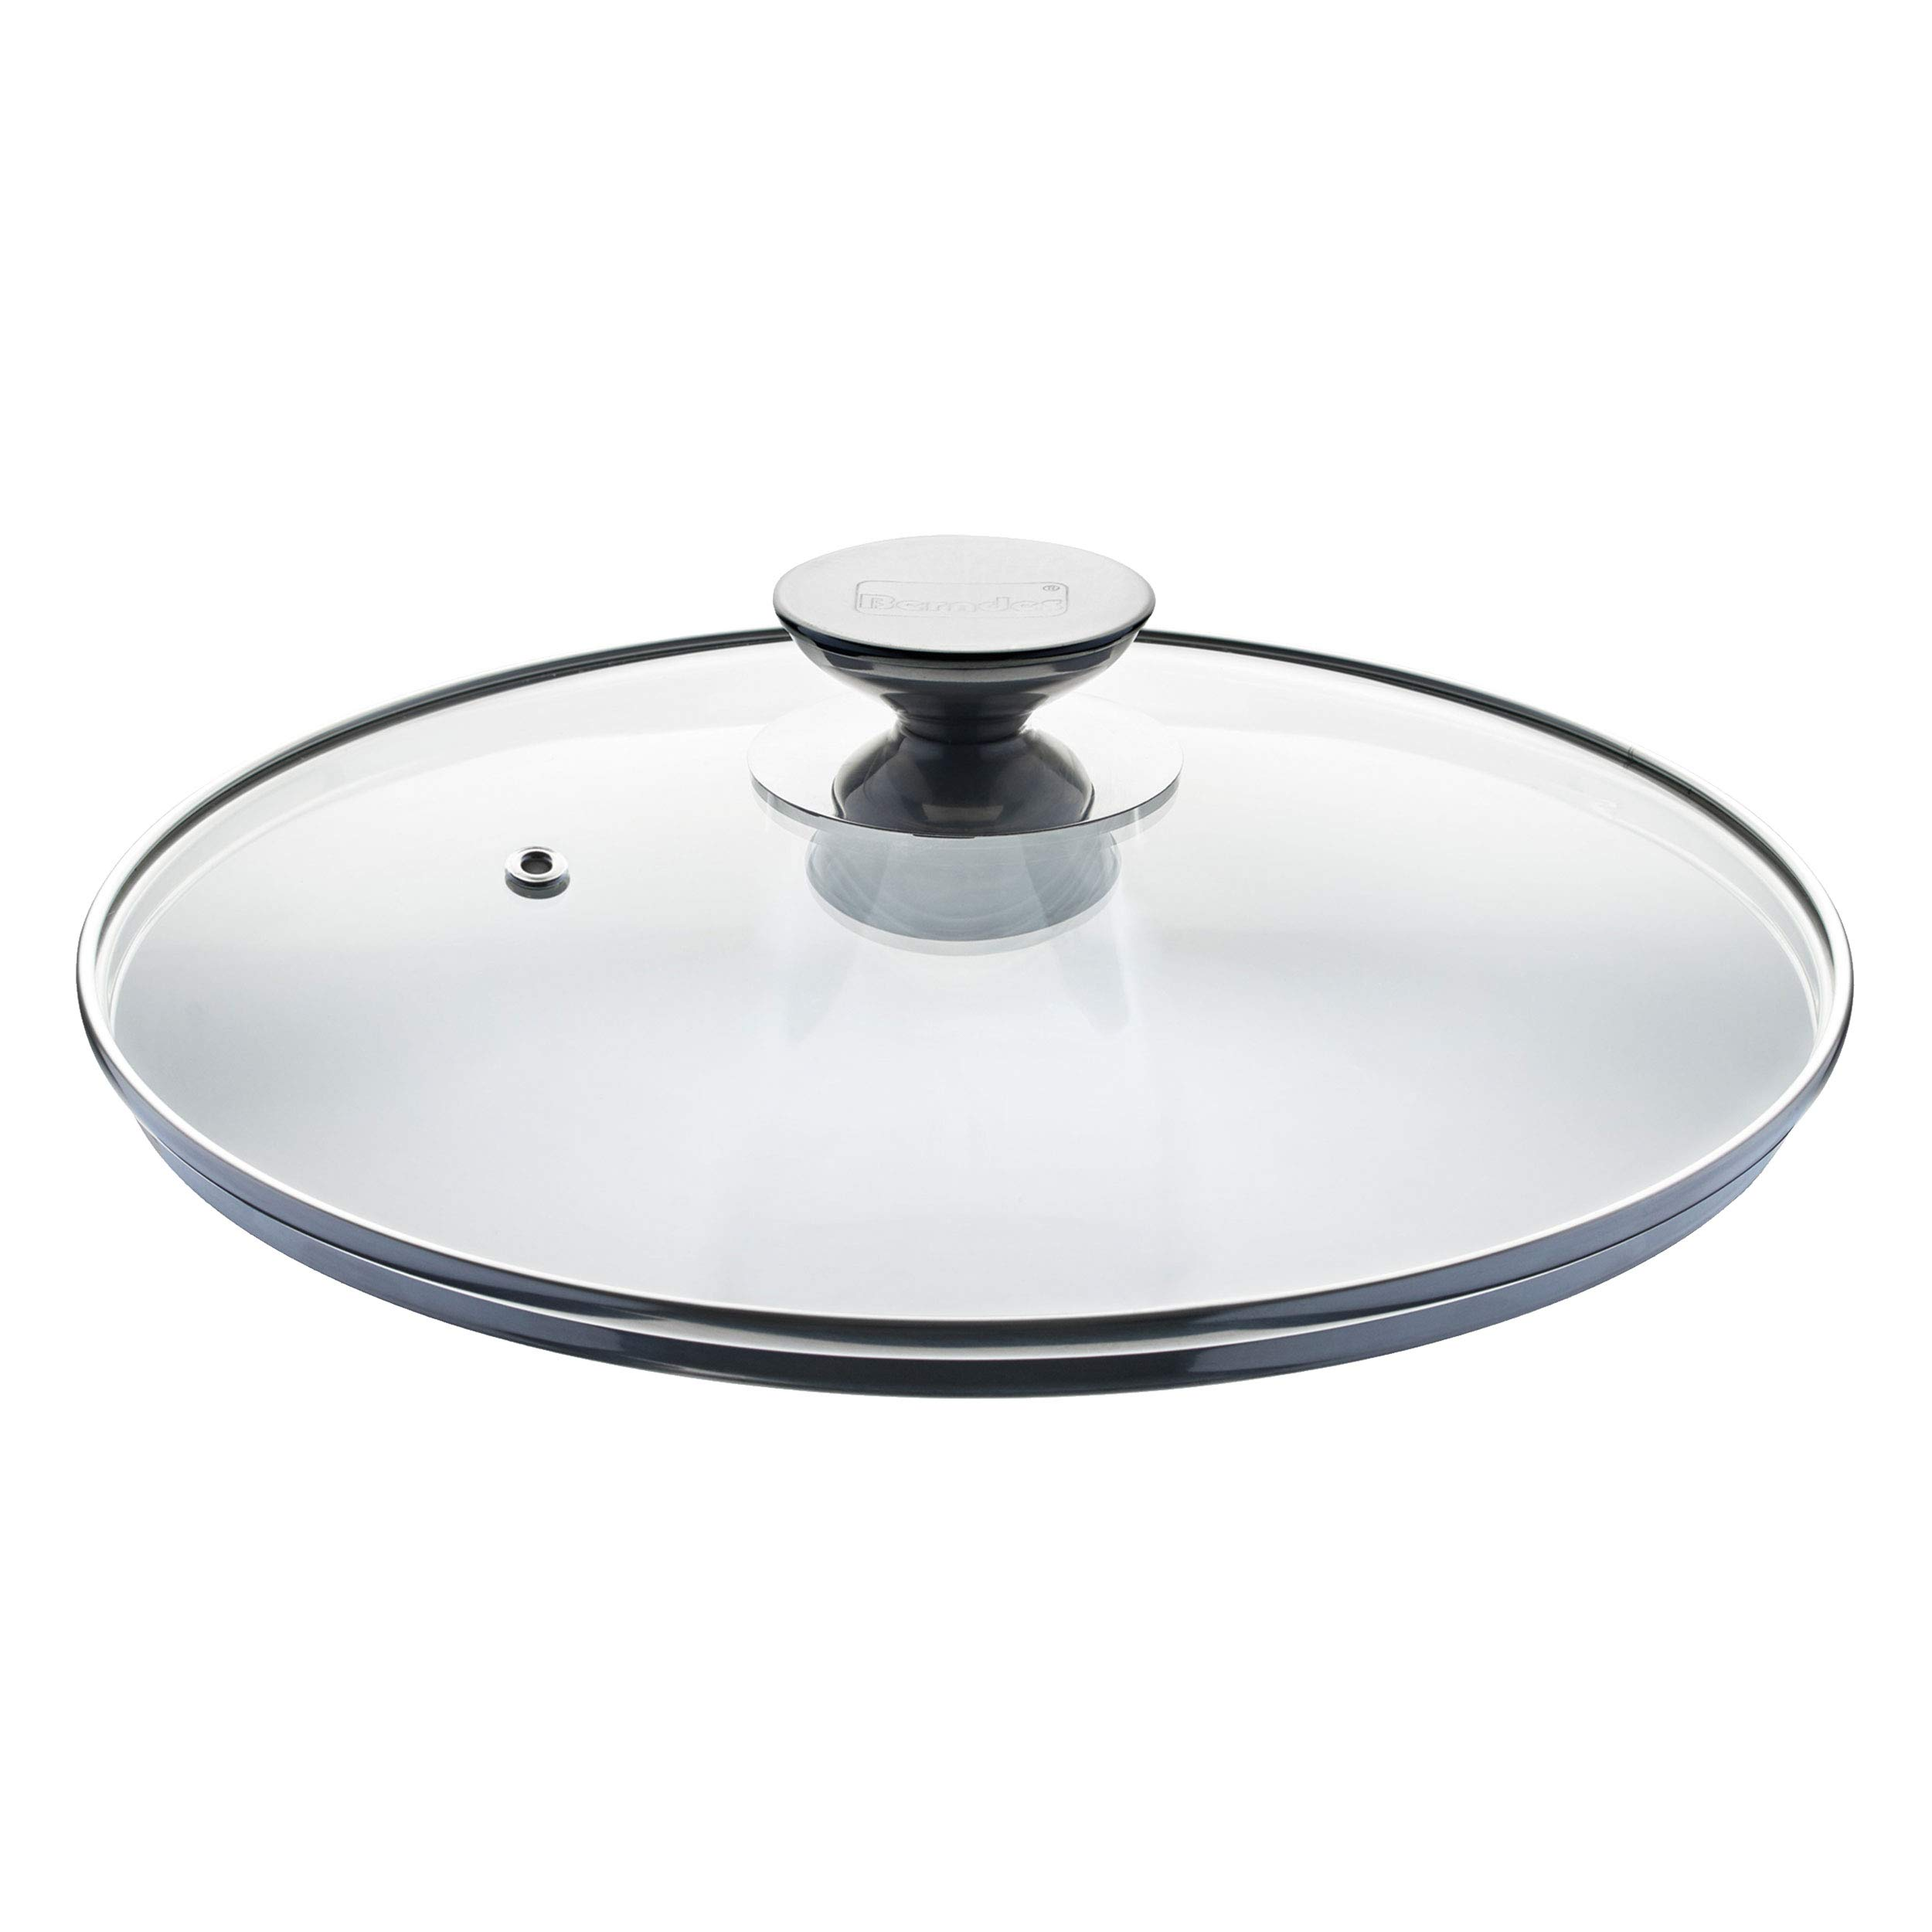 Berndes 007028 SignoCast Universal Glass Lid with Stainless Steel Rim and Knob, 11.5 Inches